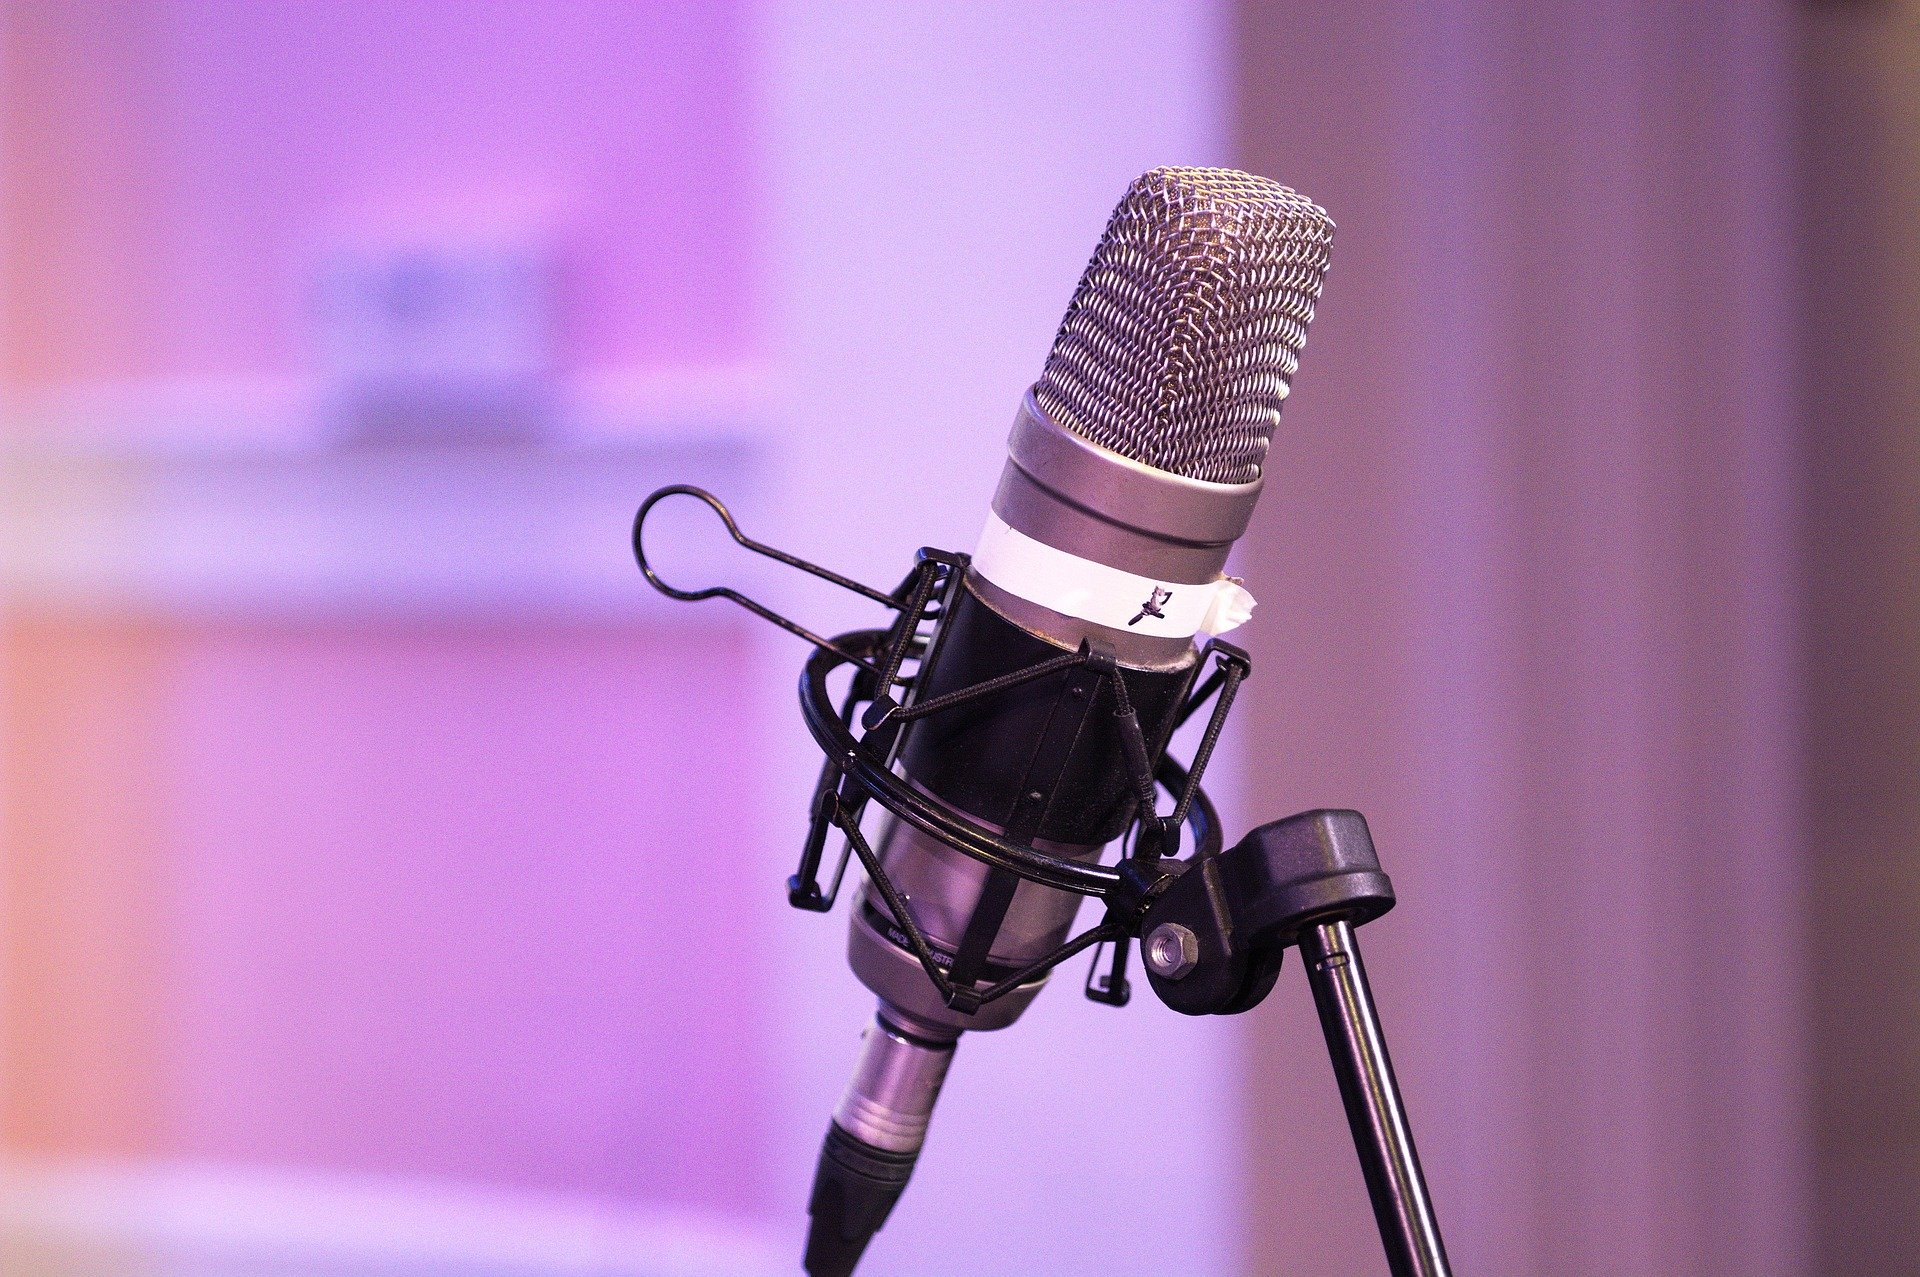 How to Make a Podcast in 2020 (Free Guide to Make Your First Show) - CollectingCents